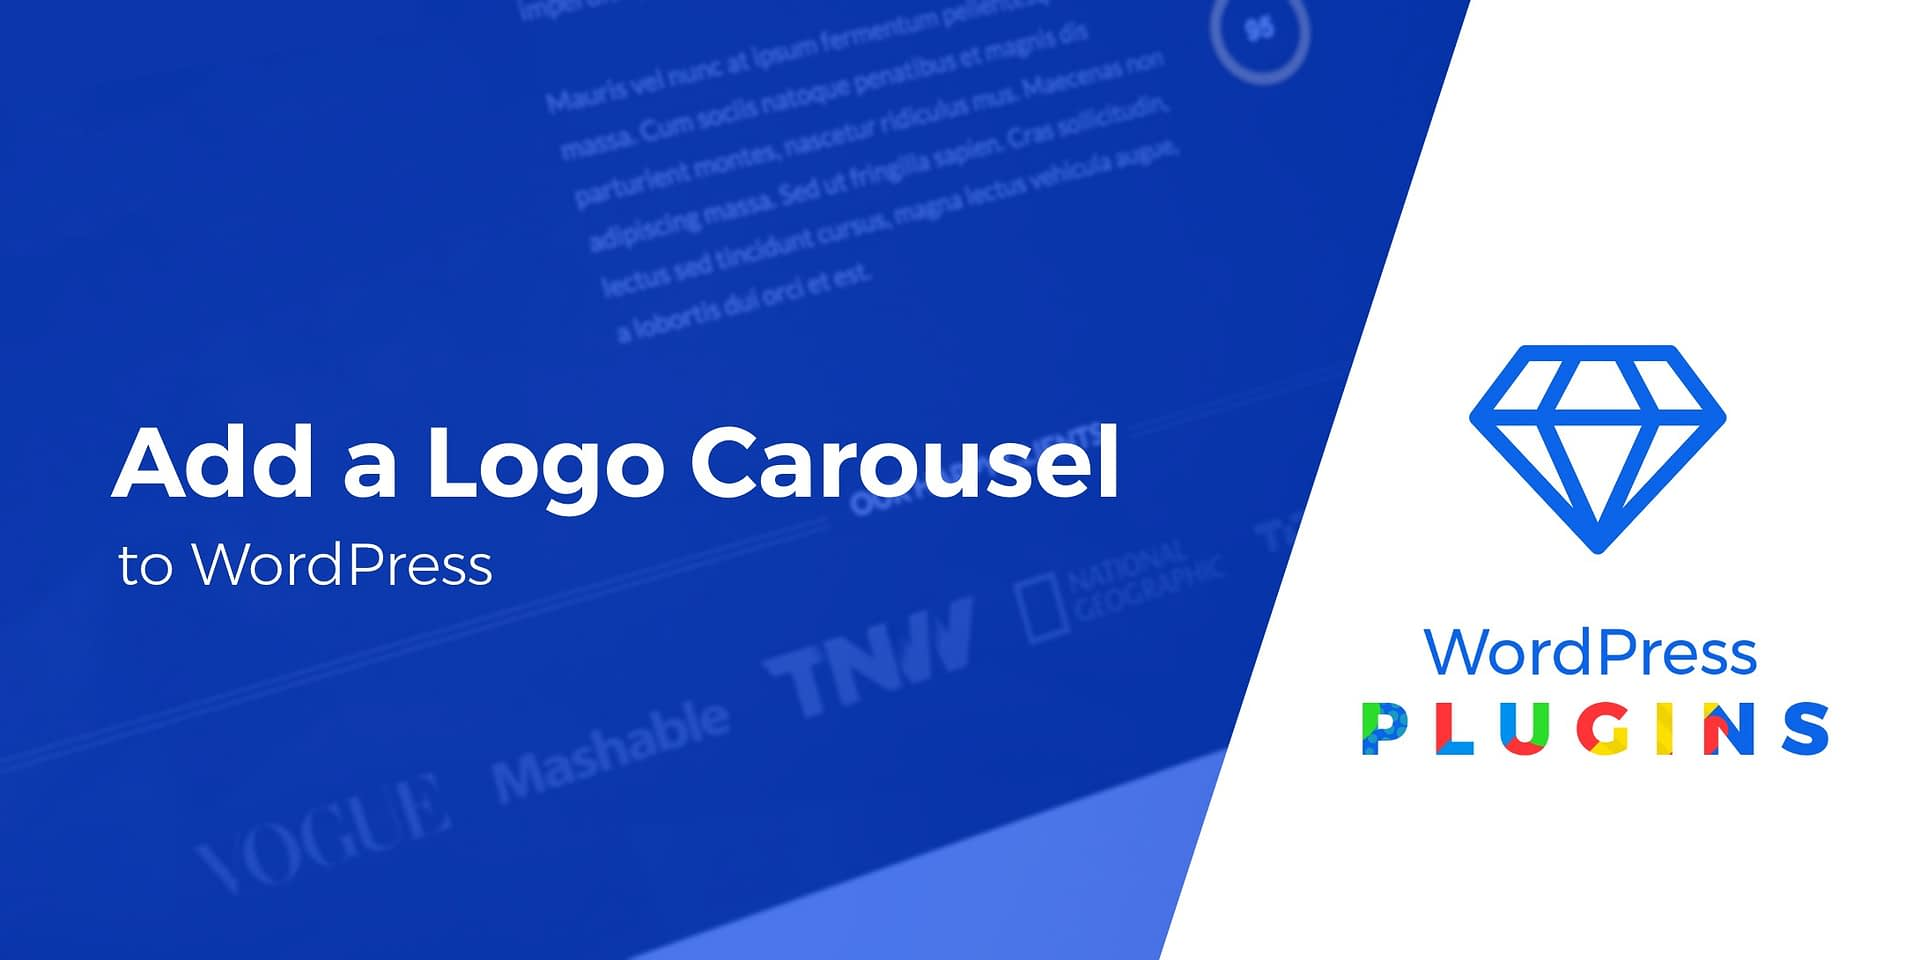 How to Add a Logo Carousel to WordPress: 2 Methods